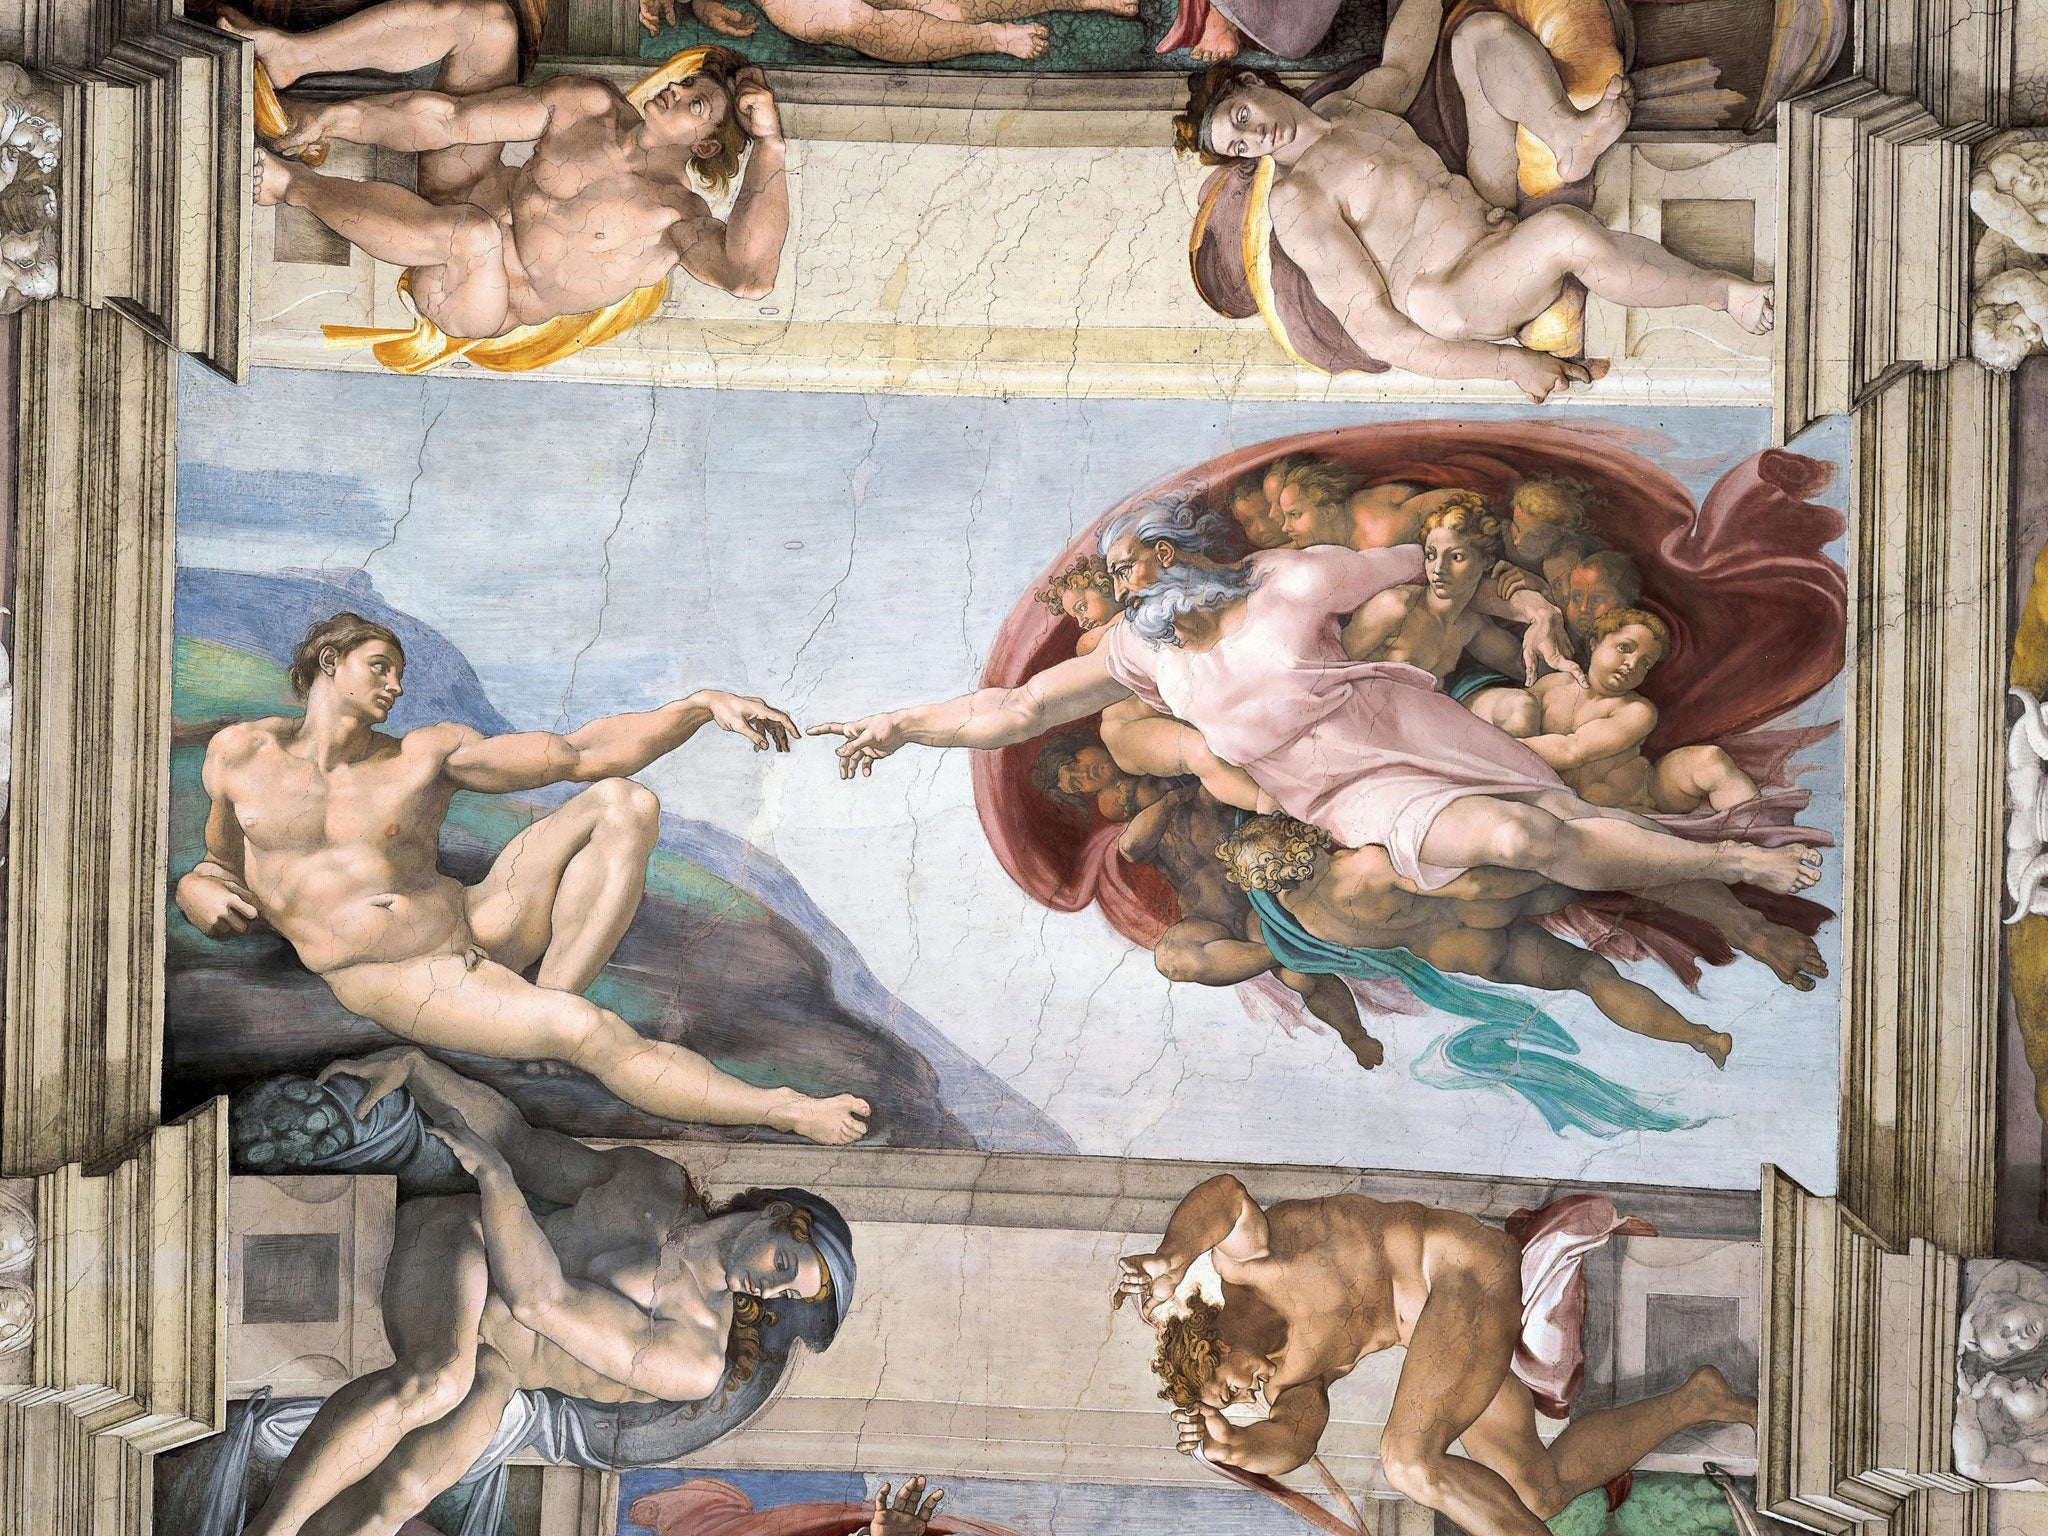 Michelangelo hid female anatomy symbols in Sistine Chapel ceiling painting, researchers claim